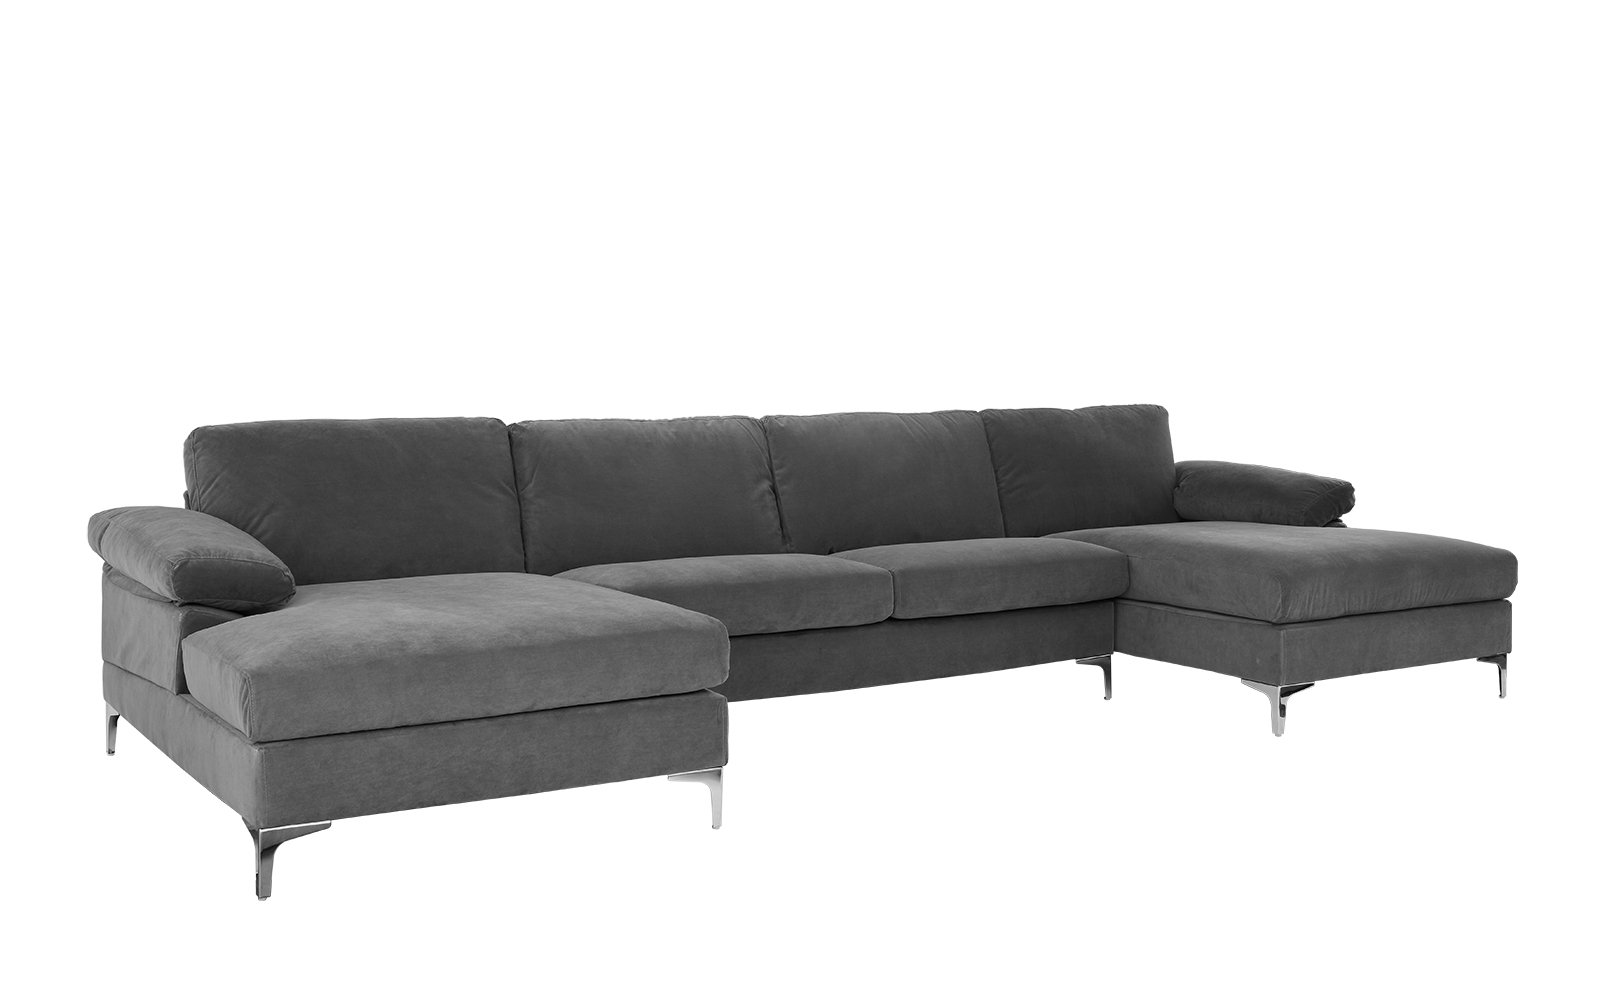 Luxury Large Leather Chaise